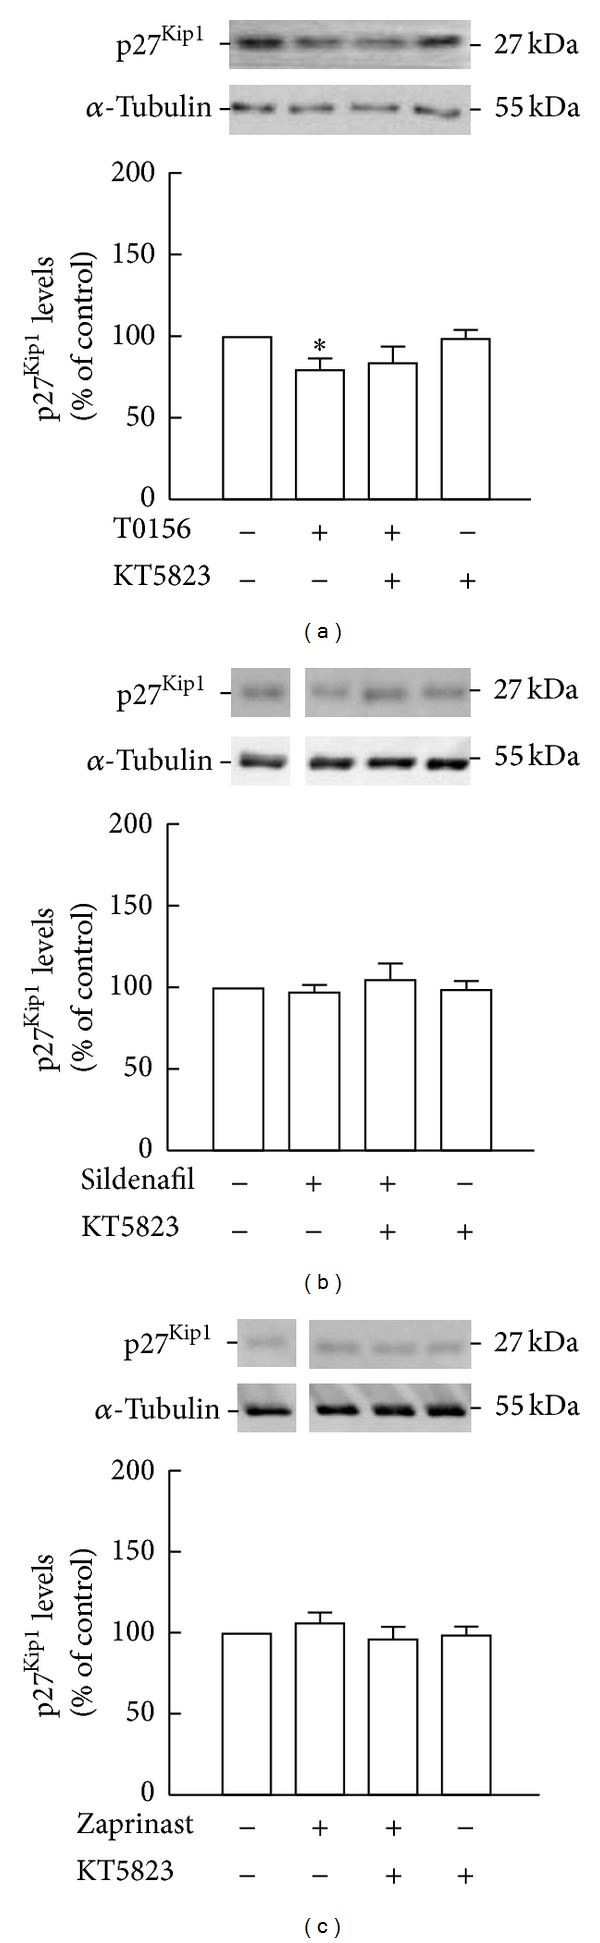 Inhibition of PKG did not prevent the decrease of p27 Kip1 levels by T0156. p27 Kip1 levels following treatment with 1 μ M KT5823 and 1 μ M T0156 (a), 1 μ M sildenafil (b), or 10 μ M zaprinast (c) for 2 h were assessed by Western blot. Representative images are shown. Data are expressed as means ± SEM of at least 4 independent experiments. One-way ANOVA (Bonferroni's post-test), * P